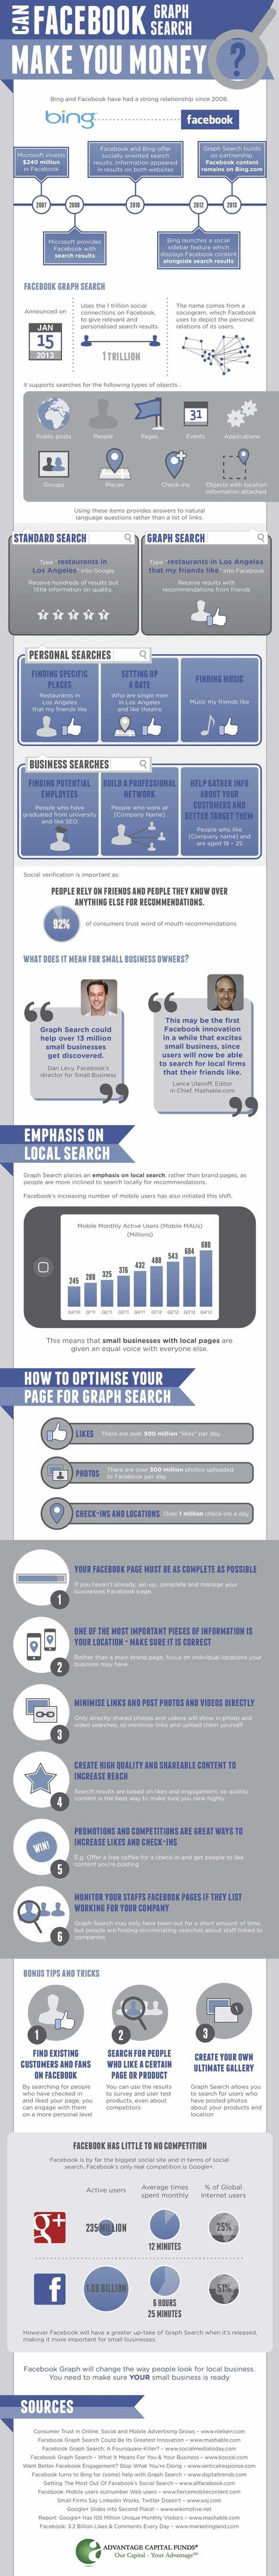 Infographic: Can Facebook Graph Make You Money? | sabkarsocialmediaInfographics | Scoop.it